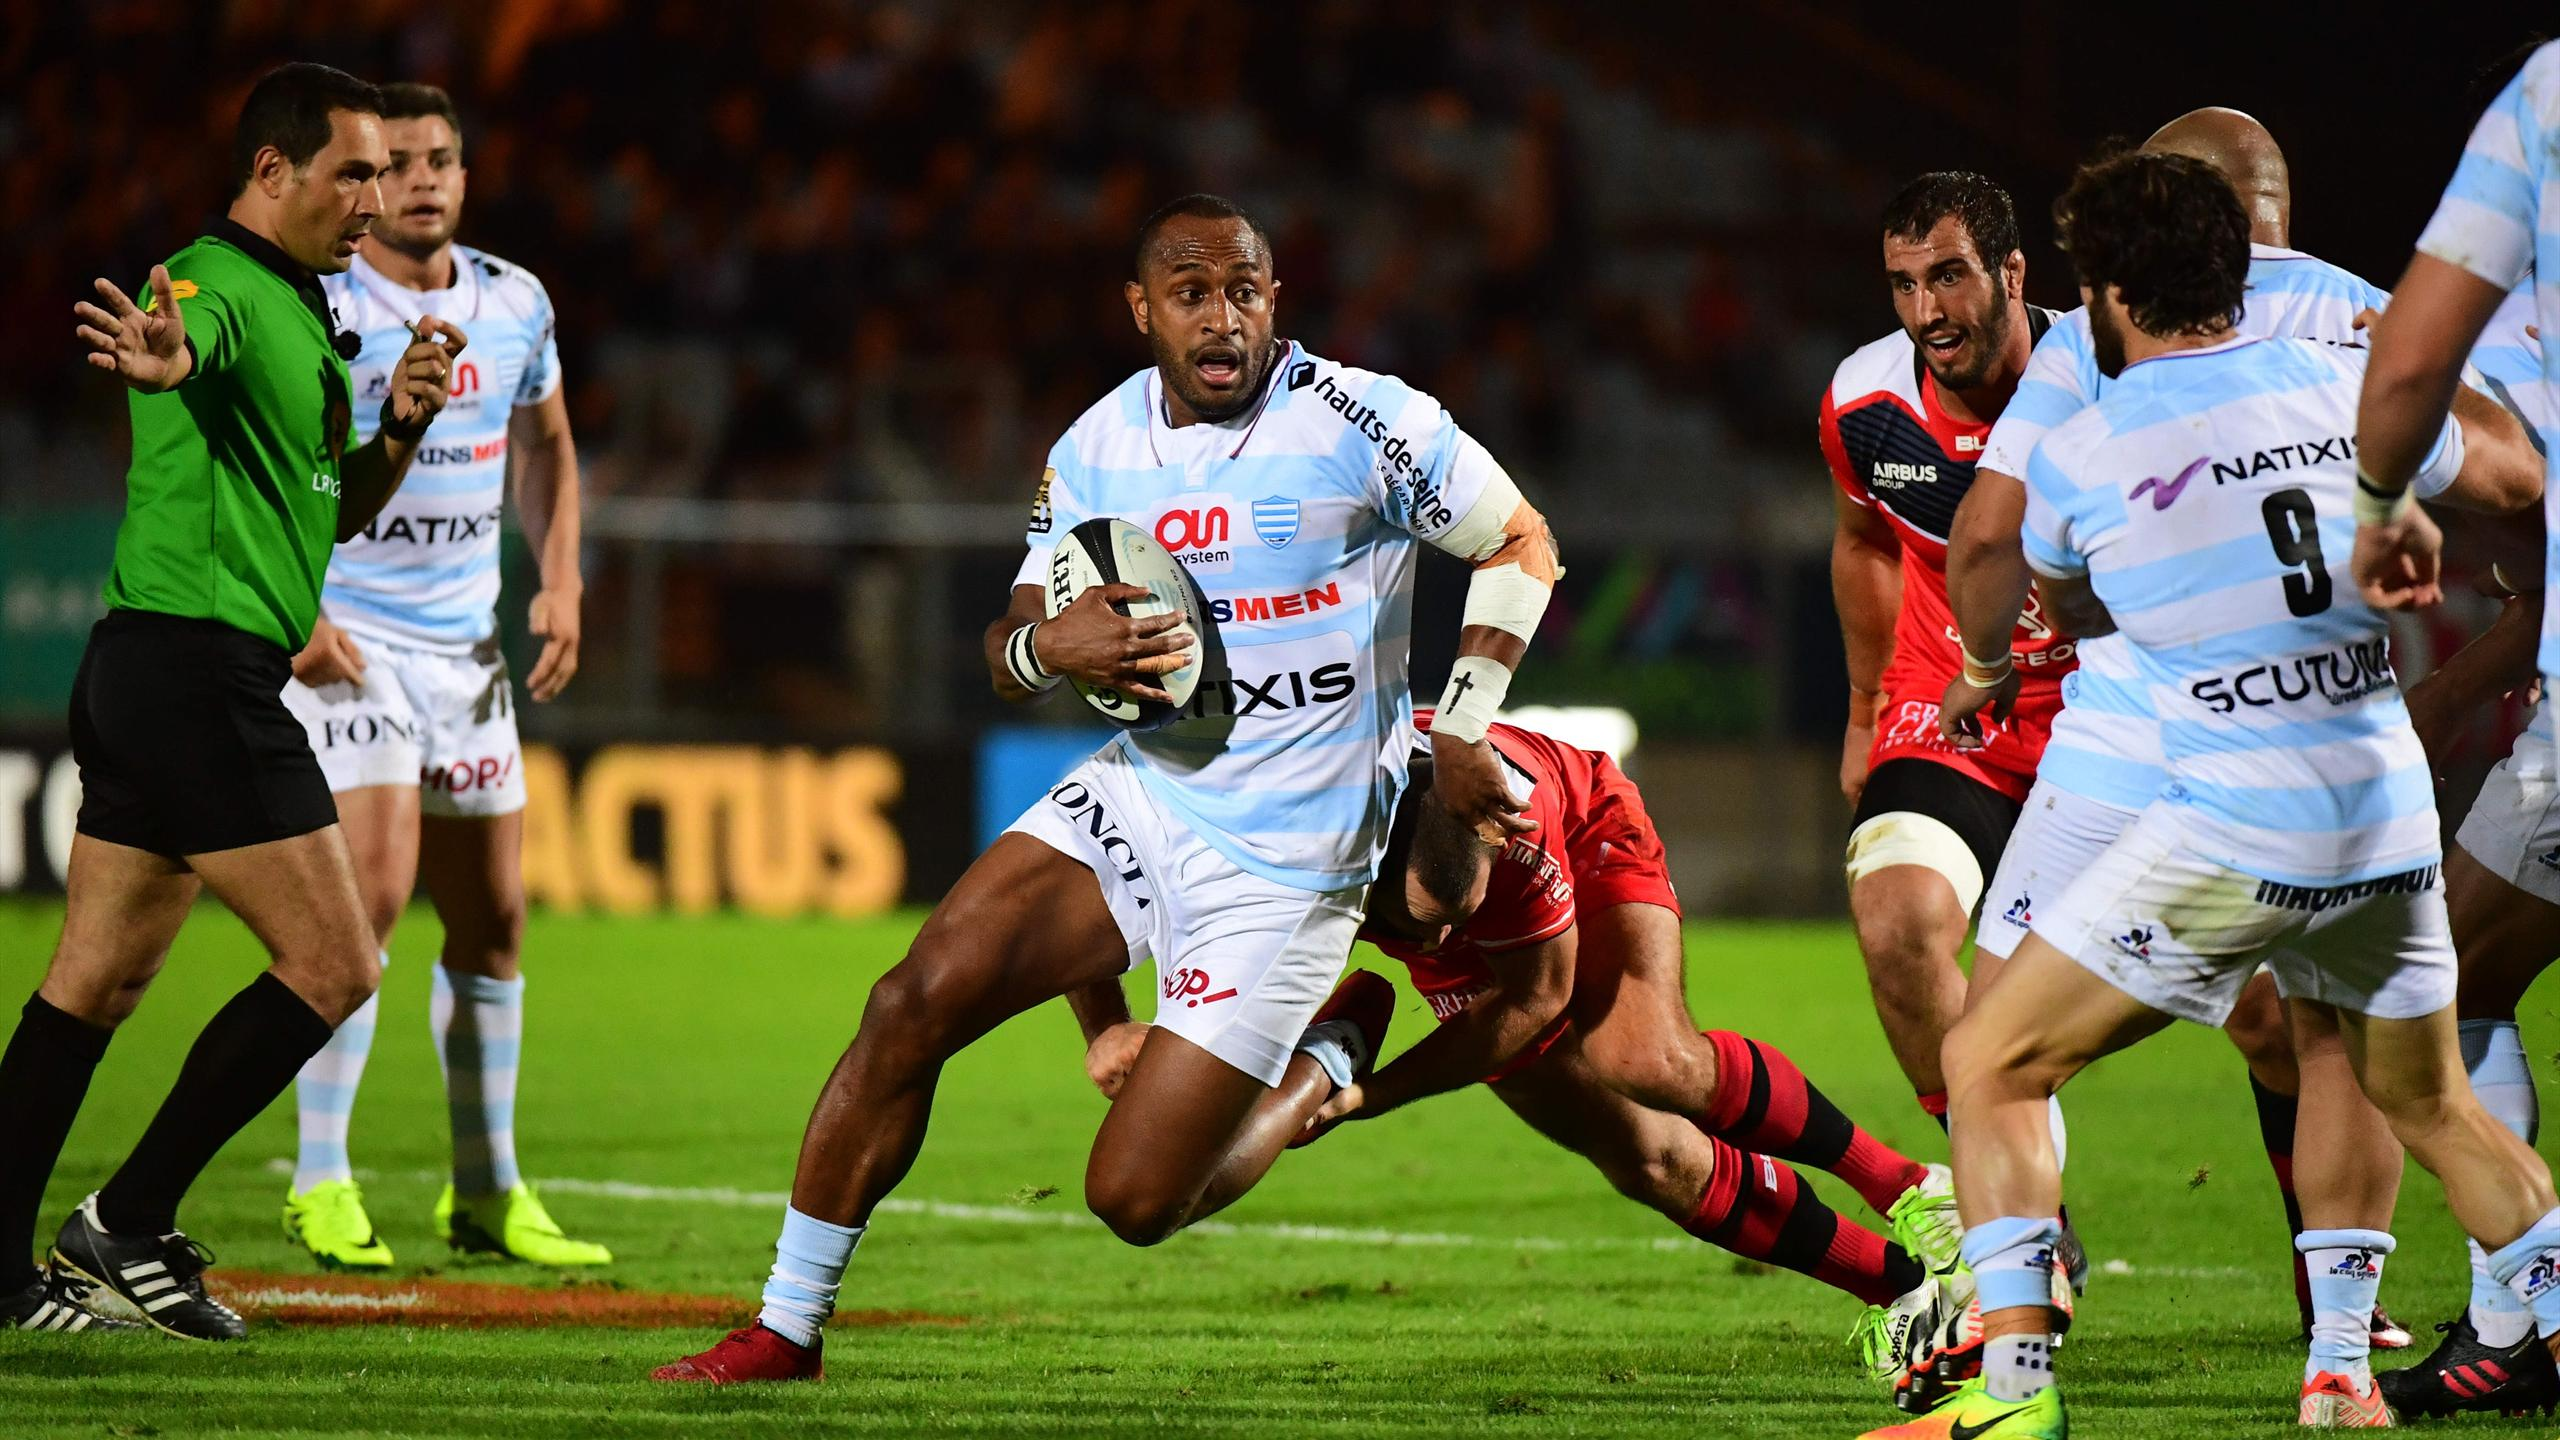 Joe Rokocoko (Racing 92) face à Toulouse - 4 septembre 2016